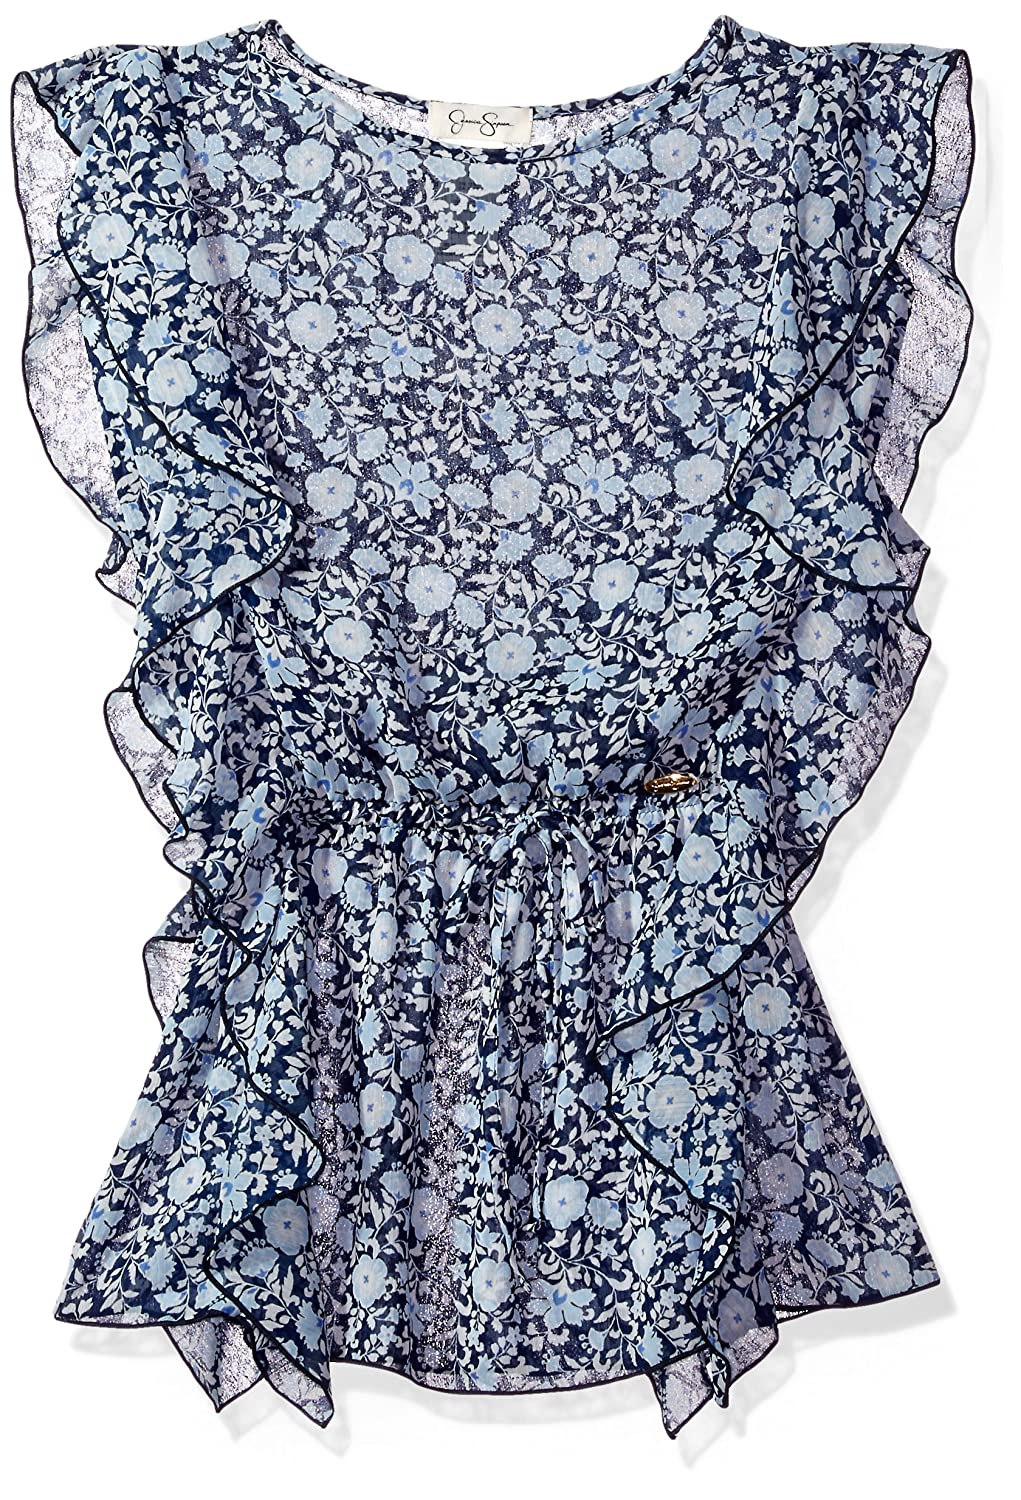 021cce962d8c Jessica Simpson Girls  Big Flutter Ditsy Floral Cover Up Blue SP17A295